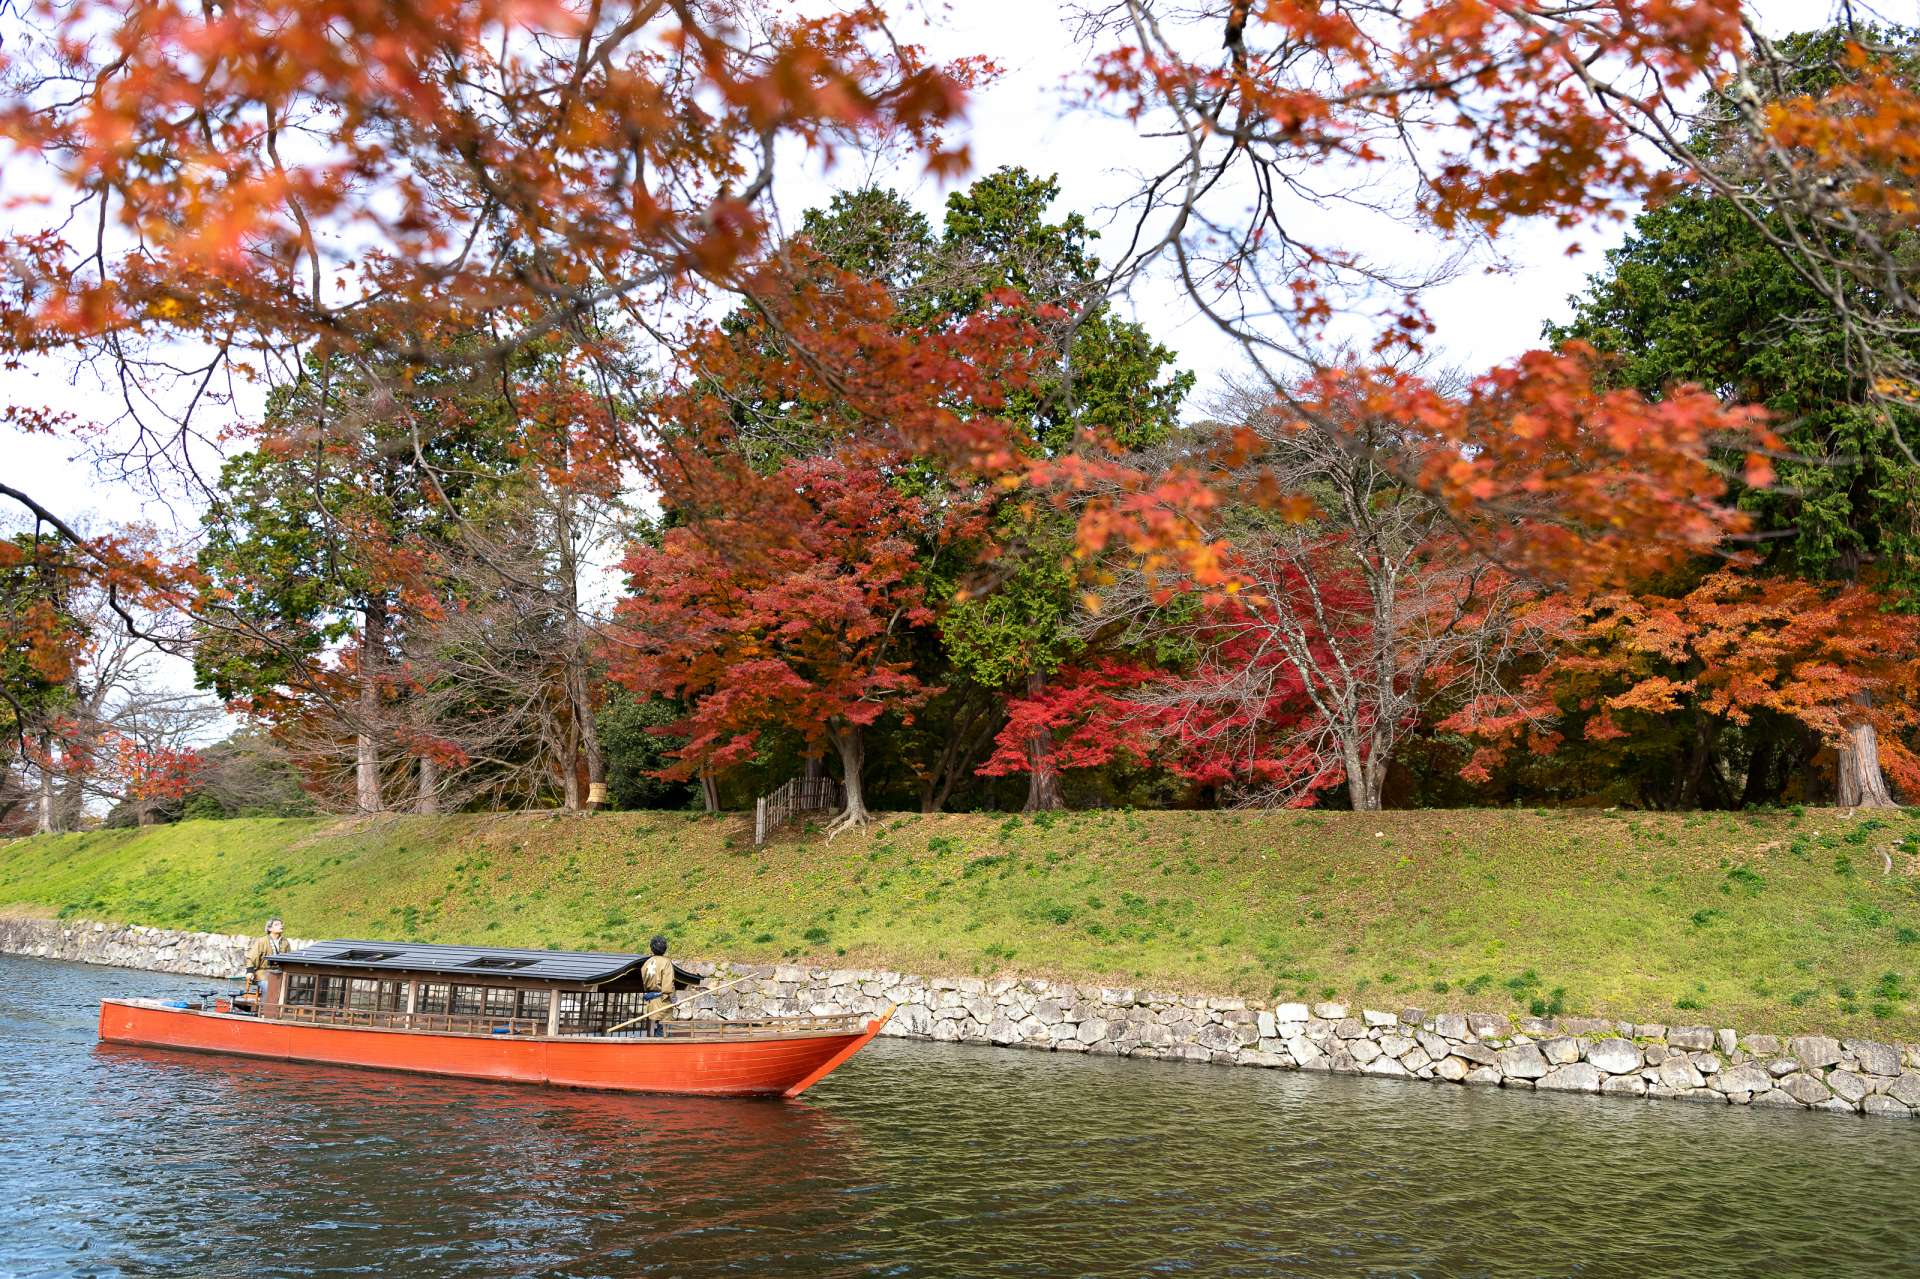 During the fall leaves season, you can enjoy the best scenery possible with the contrast of red and green leaves.